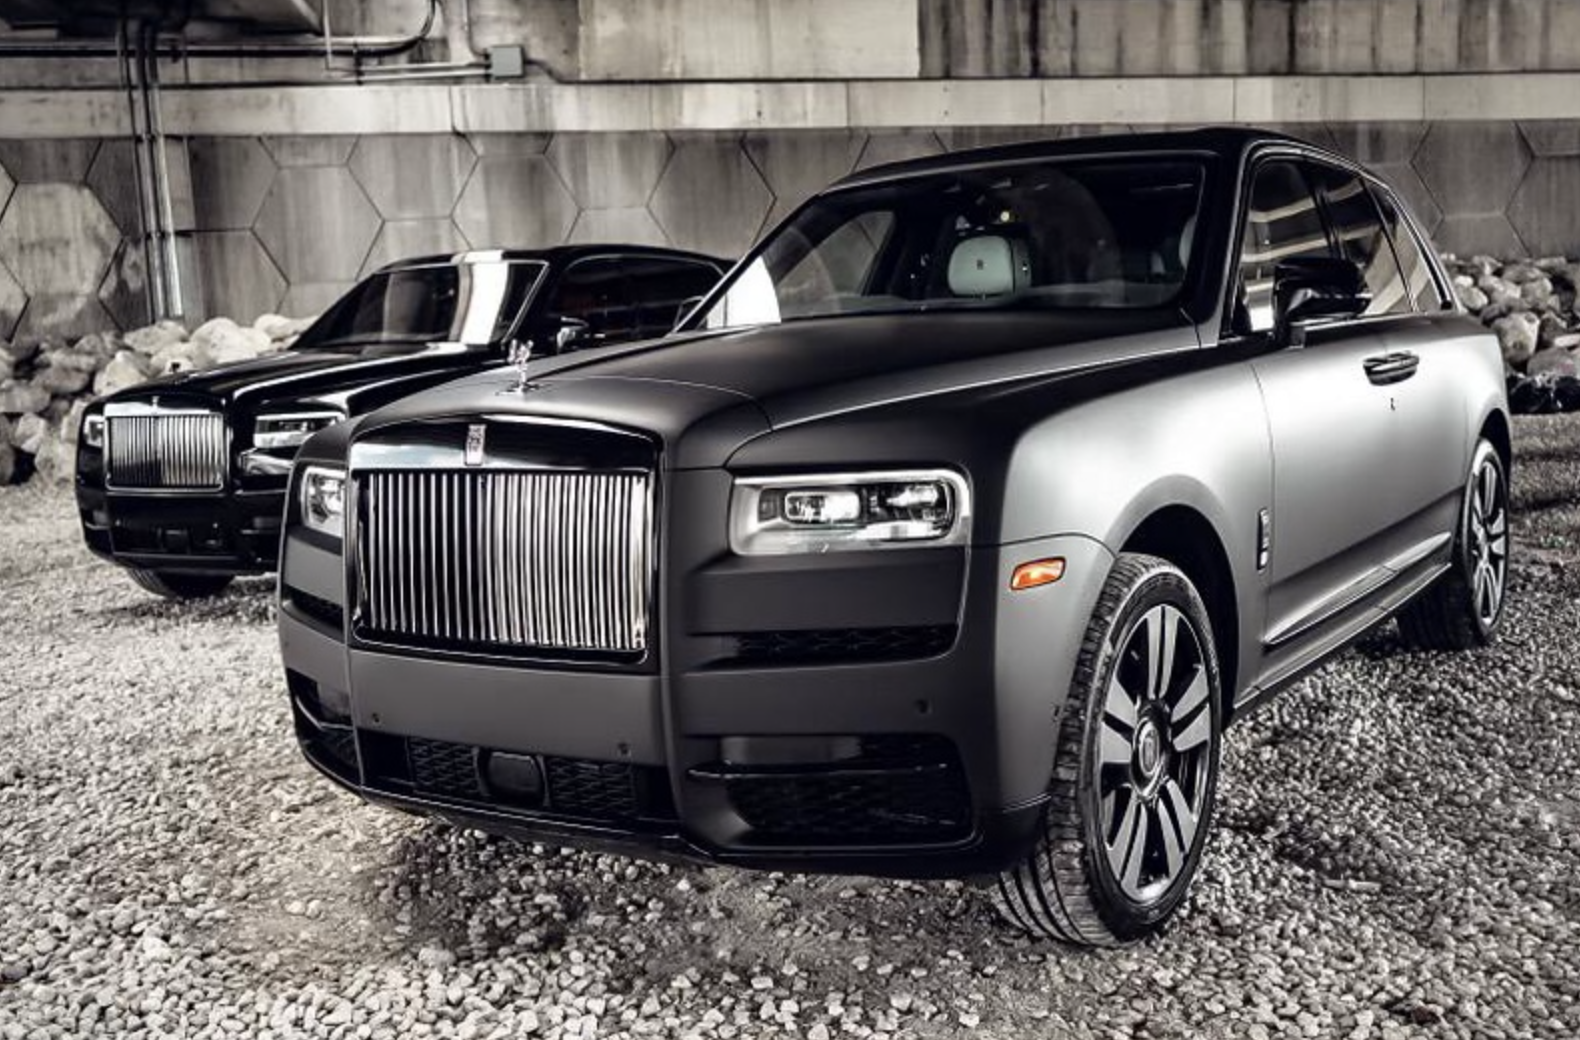 Image #0 of our  2021 ROLLS ROYCE CULLINAN - MATT BLACK    In Miami Fort Lauderdale Palm Beach South Florida